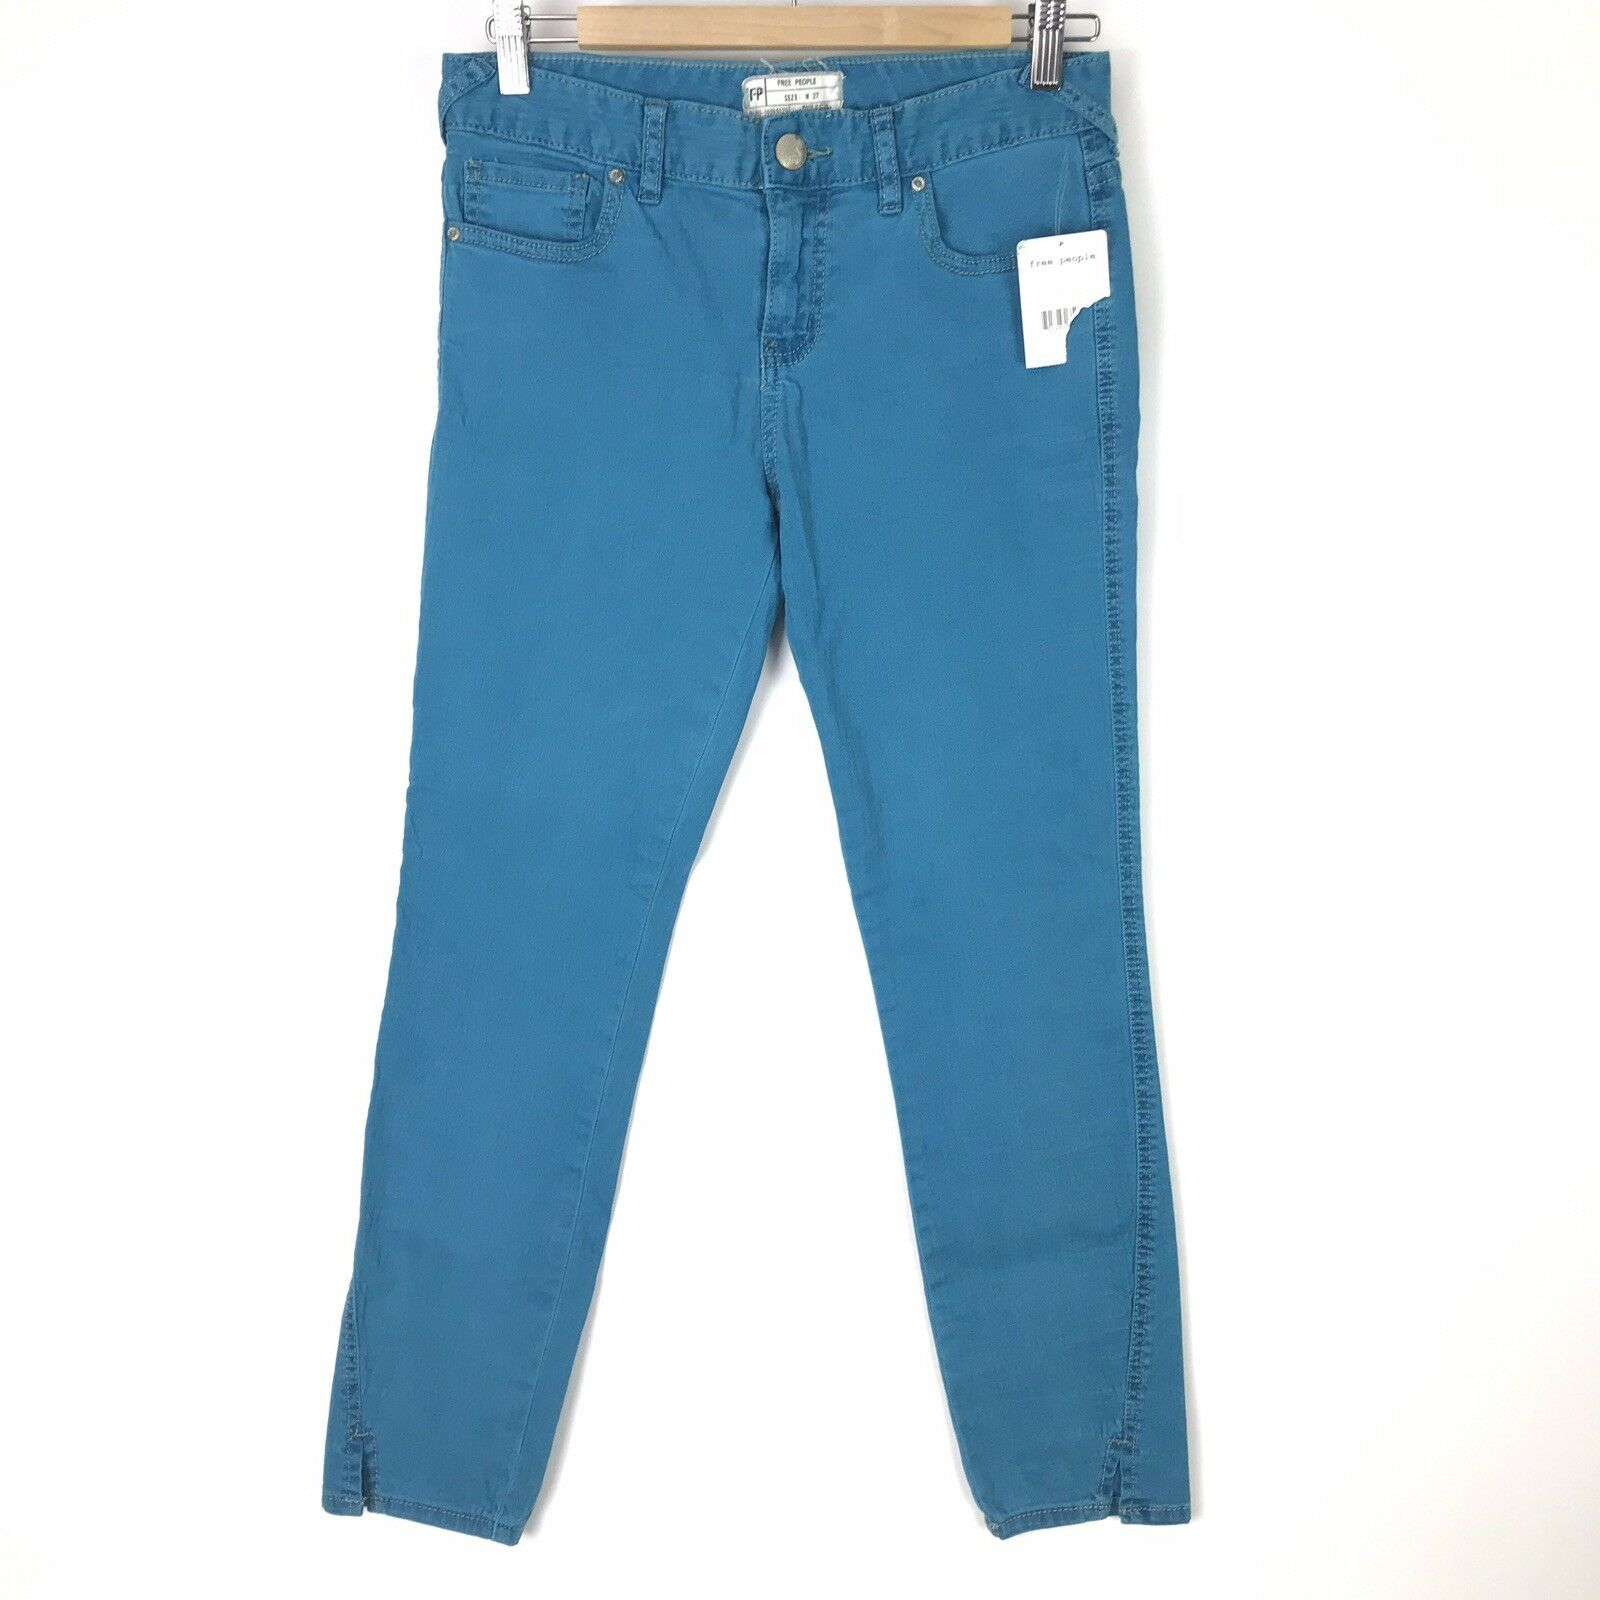 NWT Free People Womens Size 27 Skinny Crop Jeans Stormer bluee Turquoise